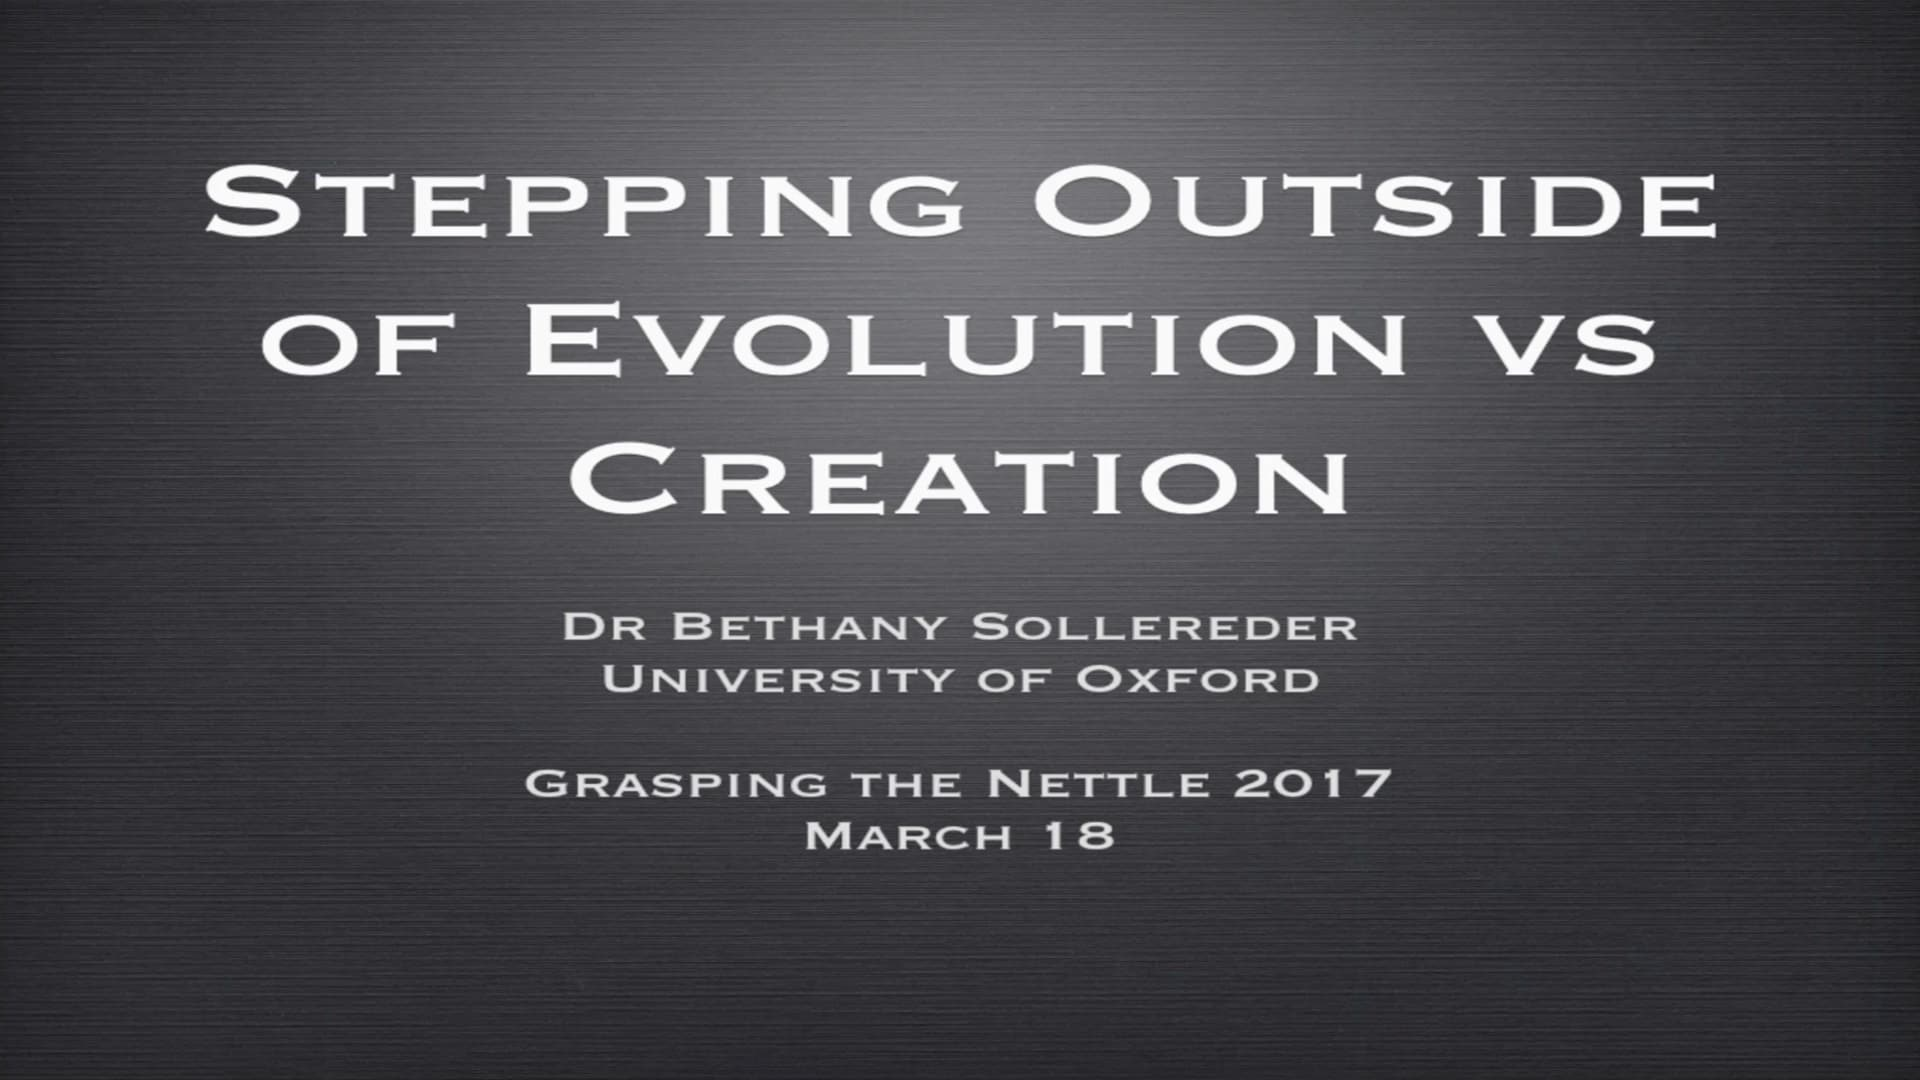 Stepping Outside of Evolution vs Creation